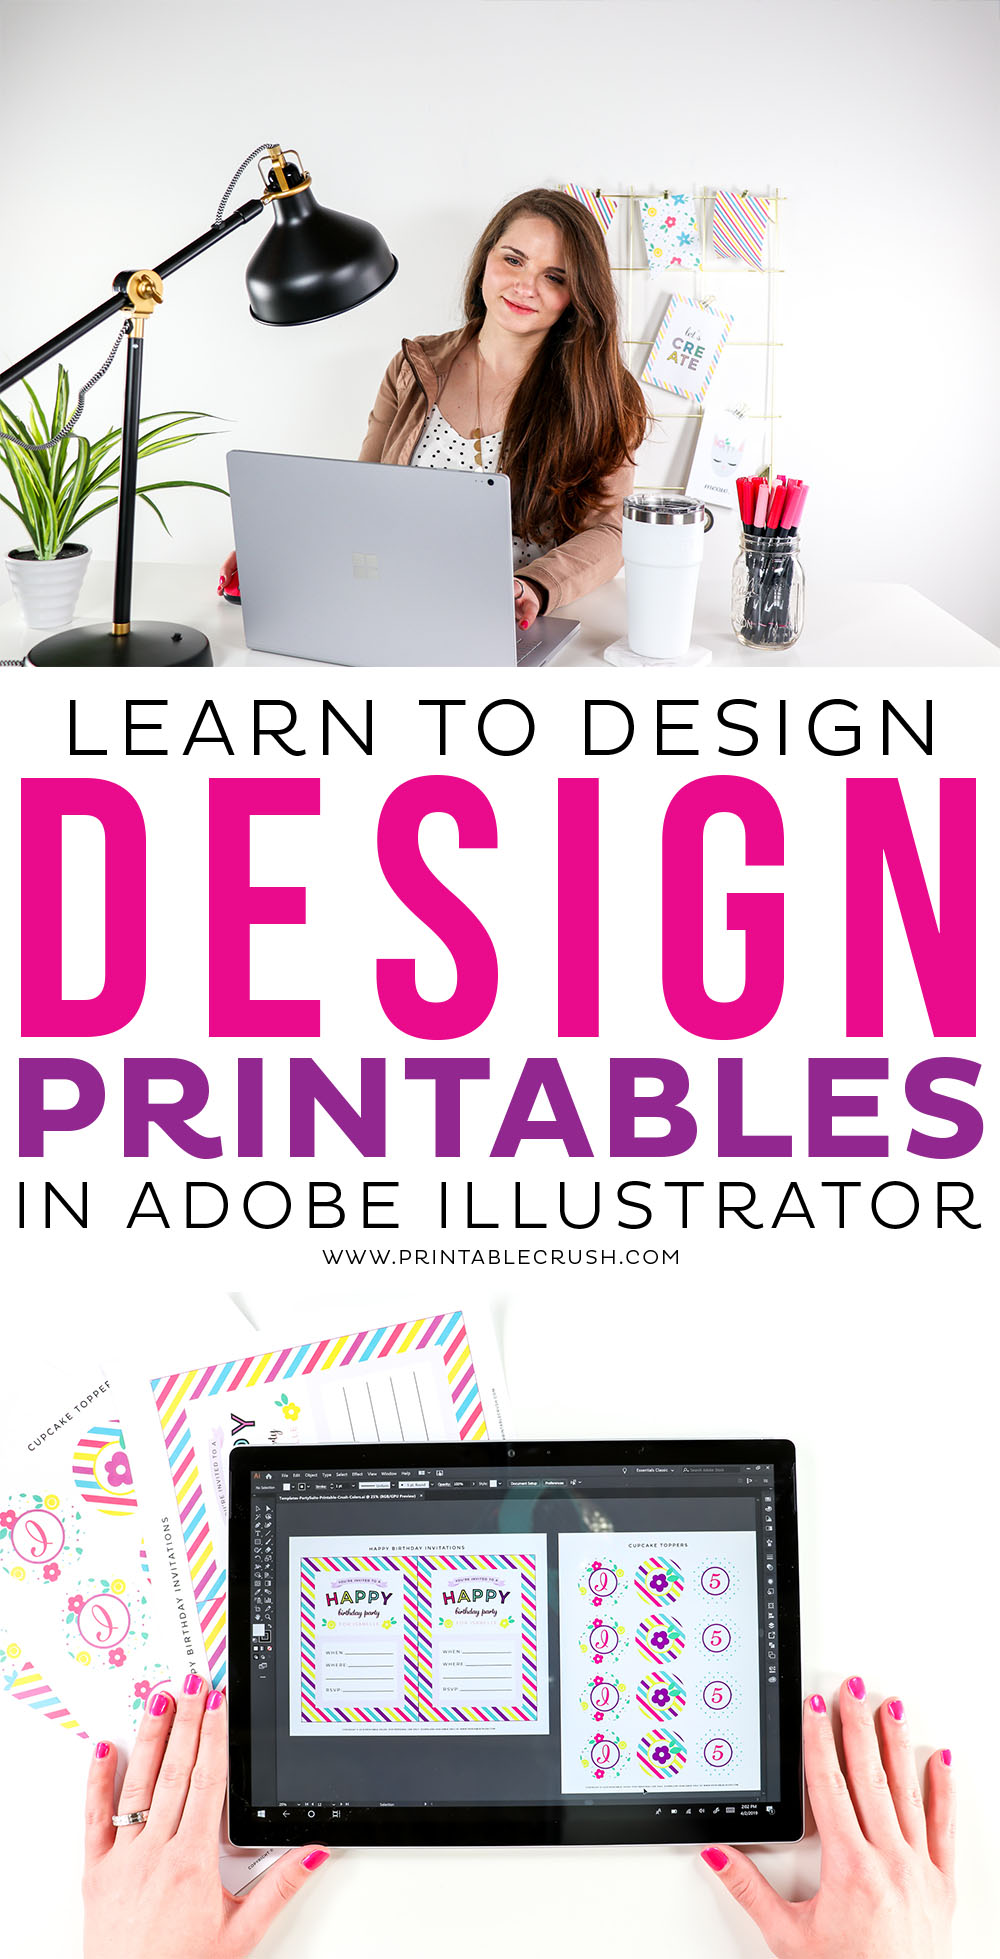 Feeling overwhelmed with learning a new design software? See how you can learn to design Printables in Adobe Illustrator!